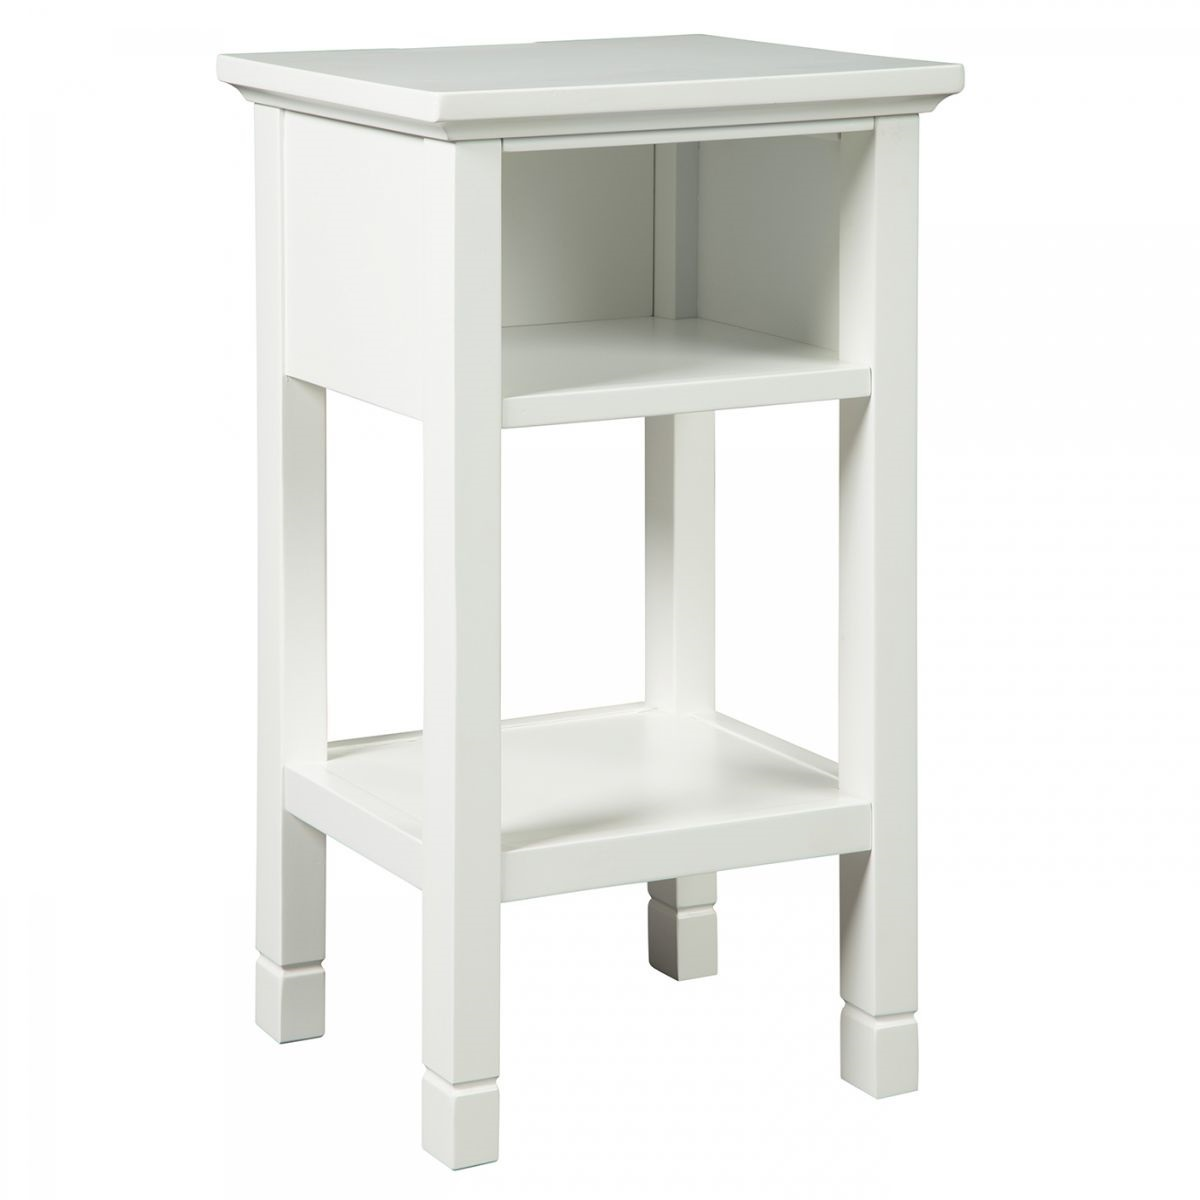 marnville white accent table with usb port badcock more ture nautical bedside lamps brown marble side closeout furniture skinny console storage round skirts decorator oval garden